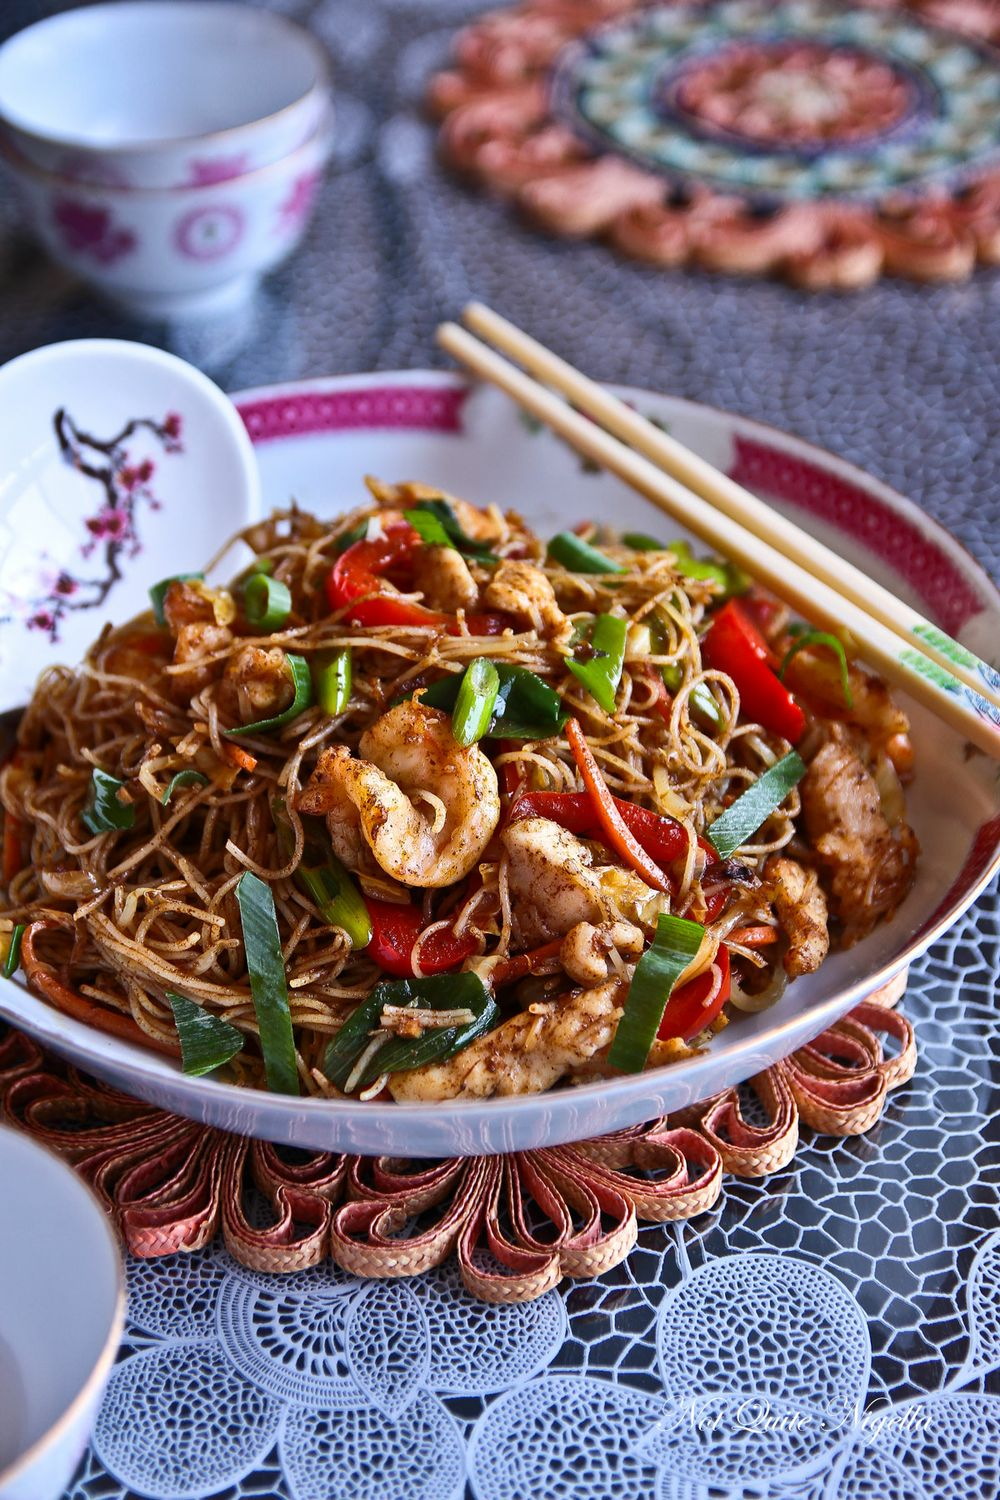 Top 5 Noodle Recipes!